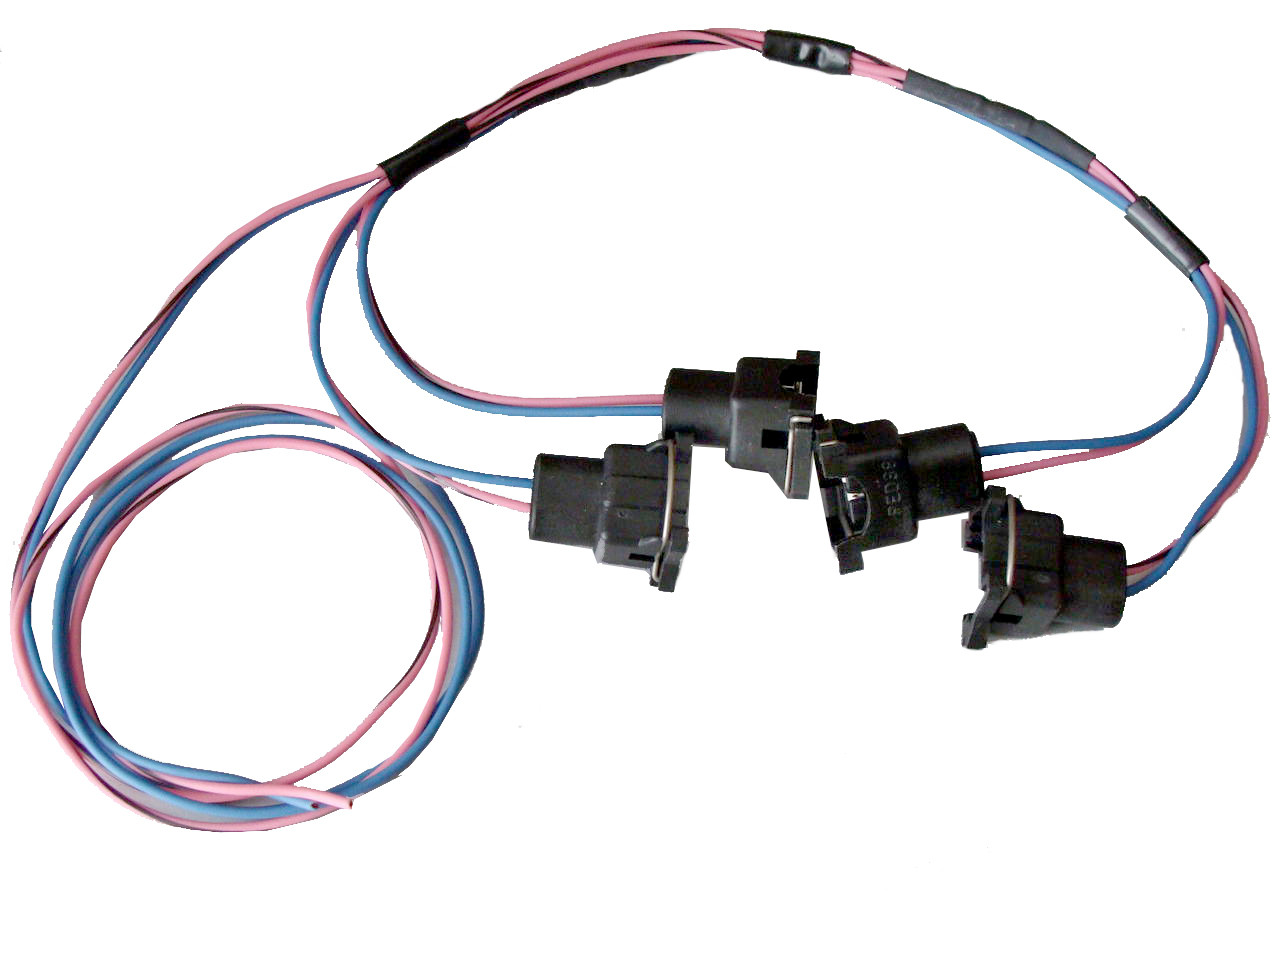 Lt1 Wiring Harness Diagram On 94 Chevy Caprice Lt1 Engine Diagram